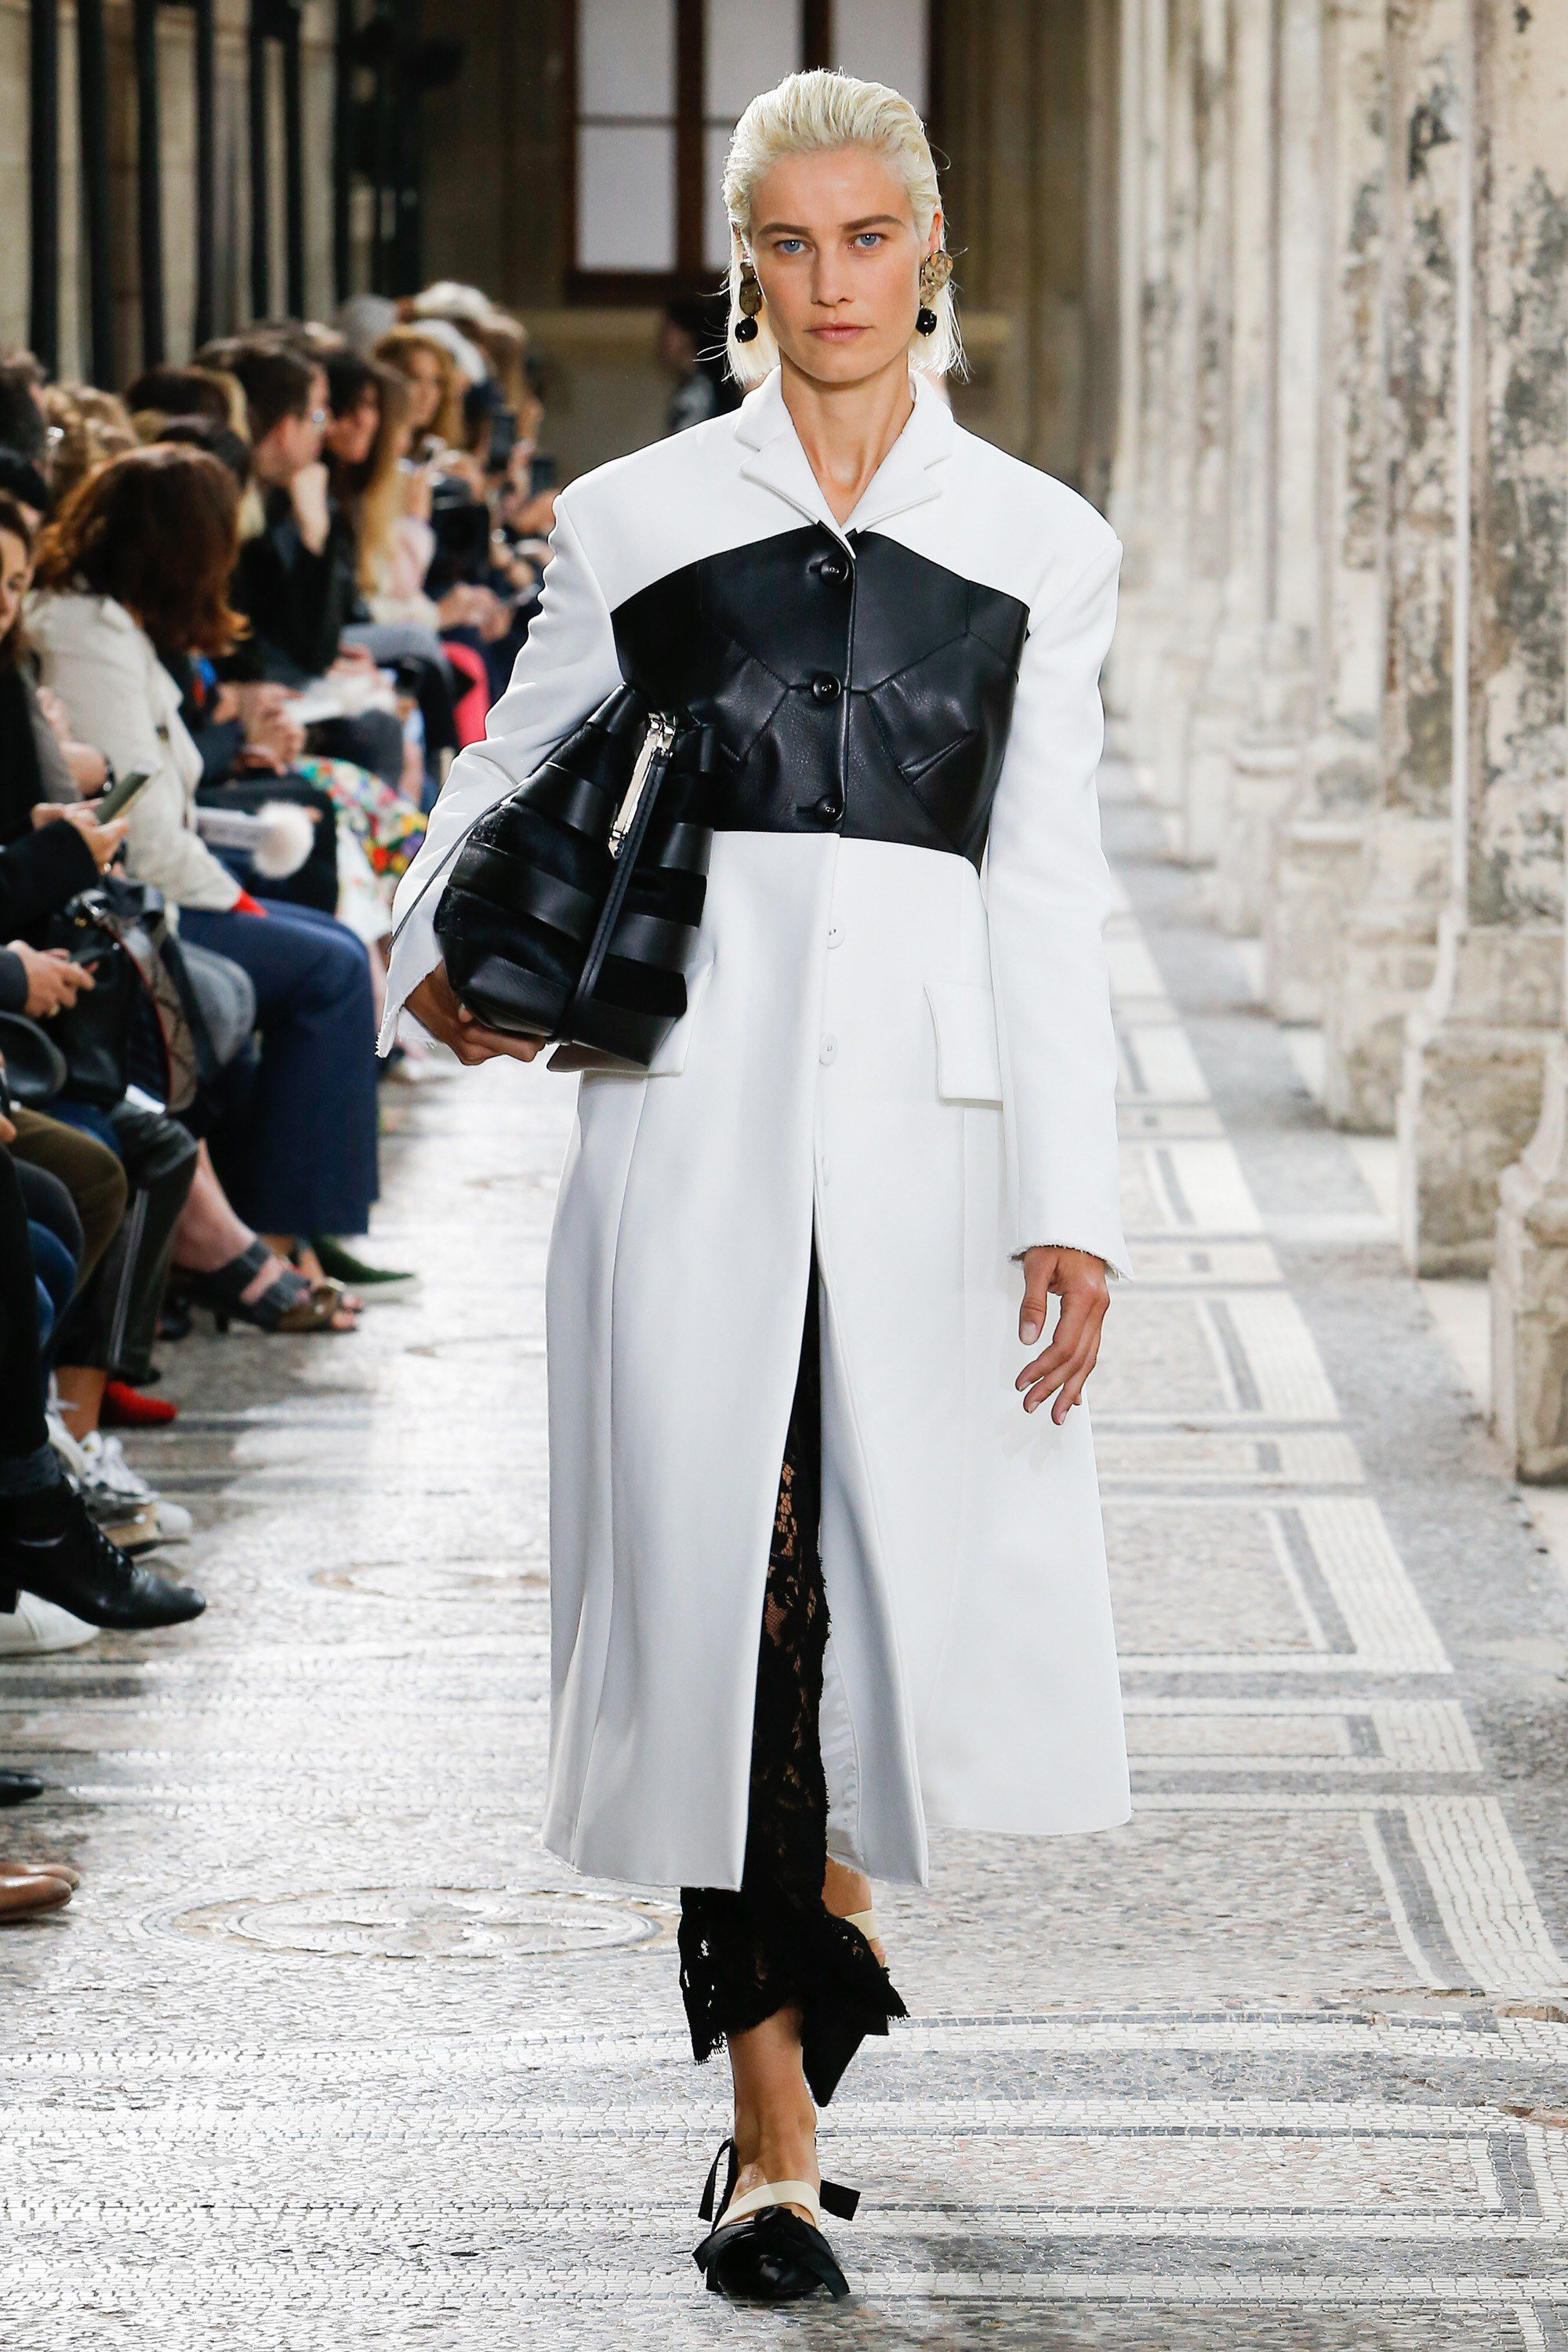 c2df1f3a2b61 Proenza Schouler Spring 2018 Ready-to-Wear Fashion Show Collection  See the  complete Proenza Schouler Spring 2018 Ready-to-Wear collection. Look 16